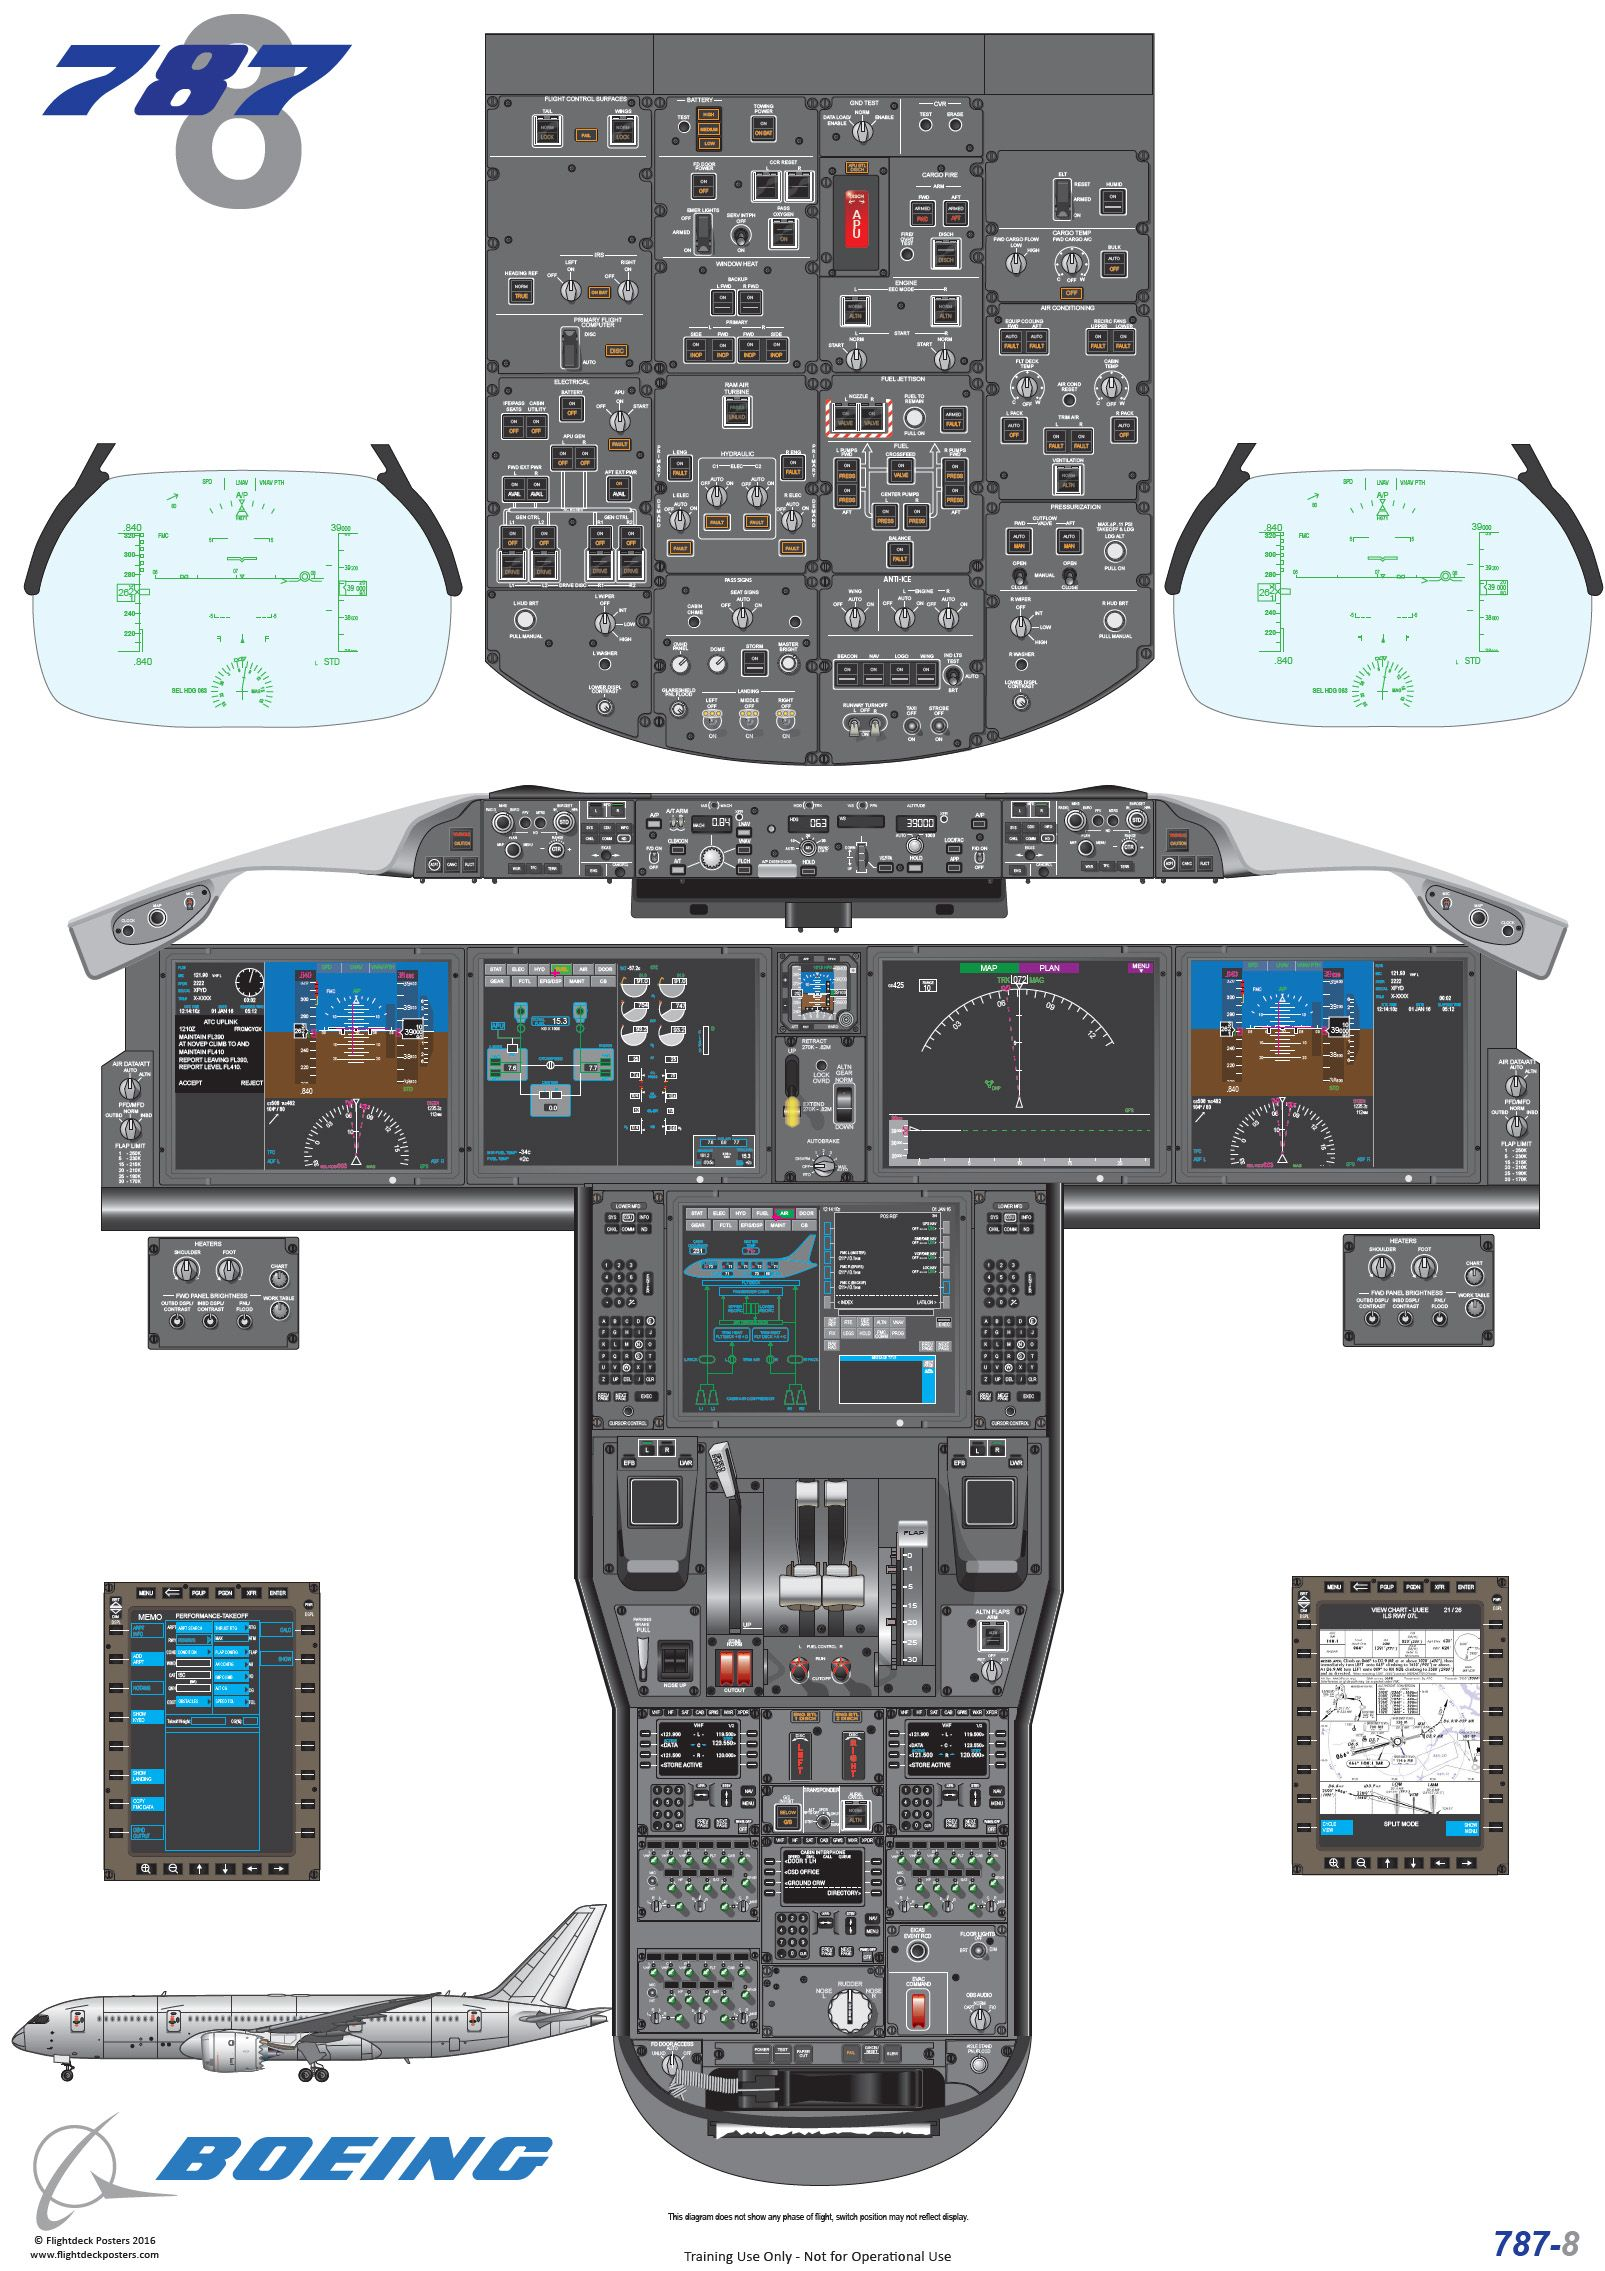 hight resolution of boeing 787 8 cockpit diagram used for training pilots